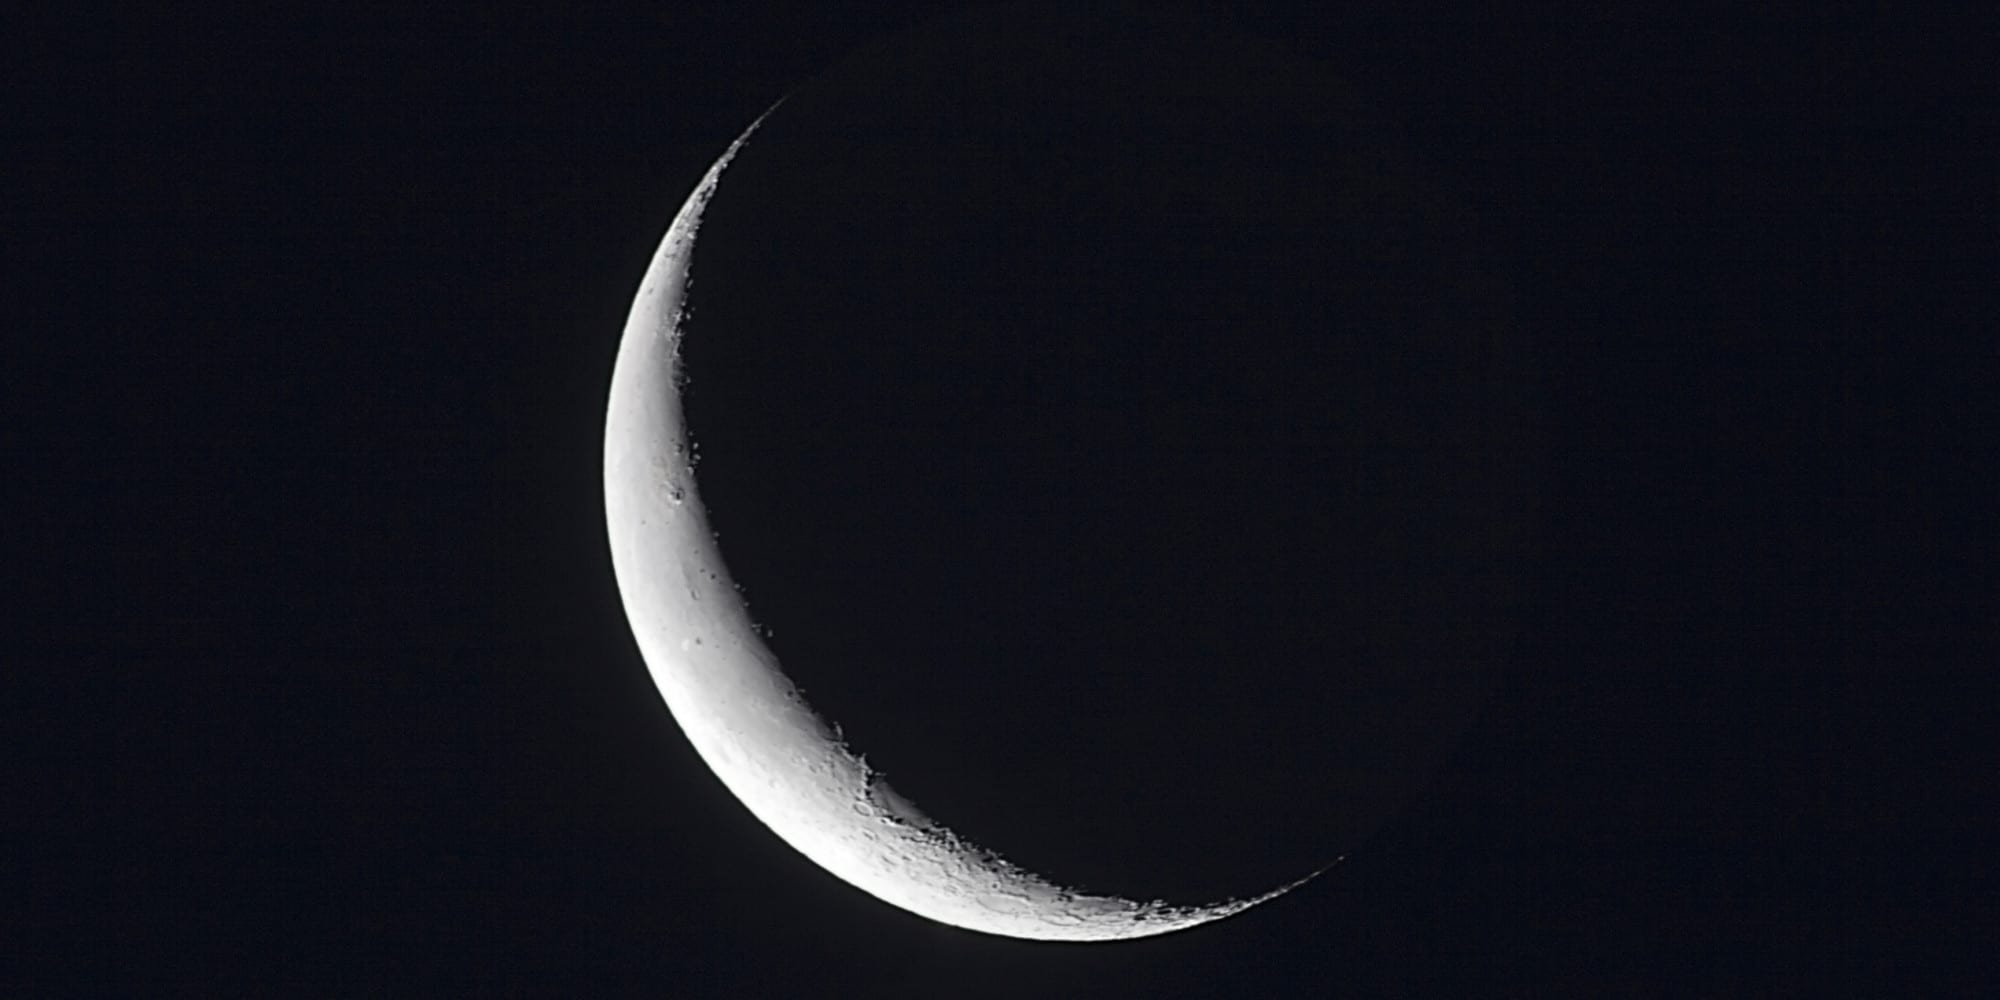 Embracing the new moon